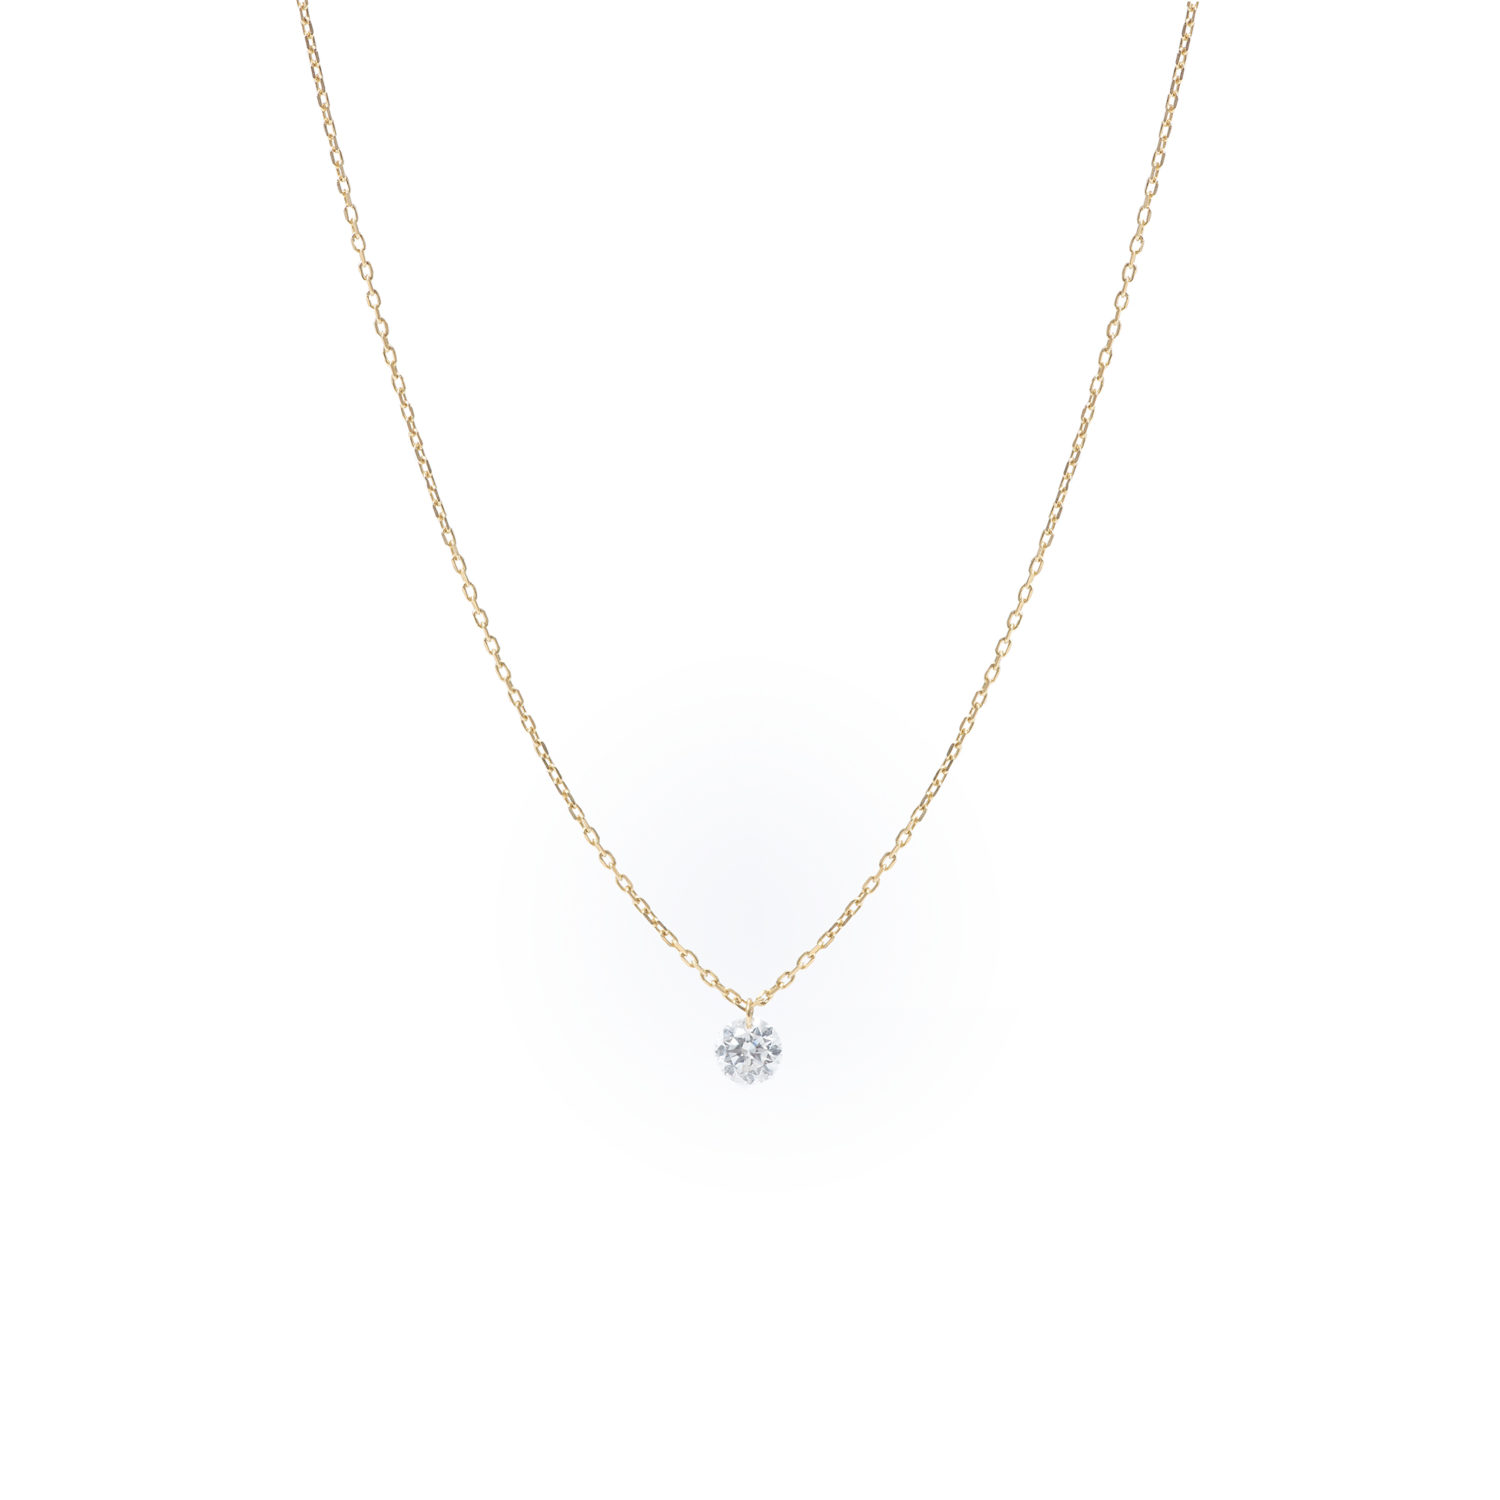 COLLIER DANAE 1RD PERSEE